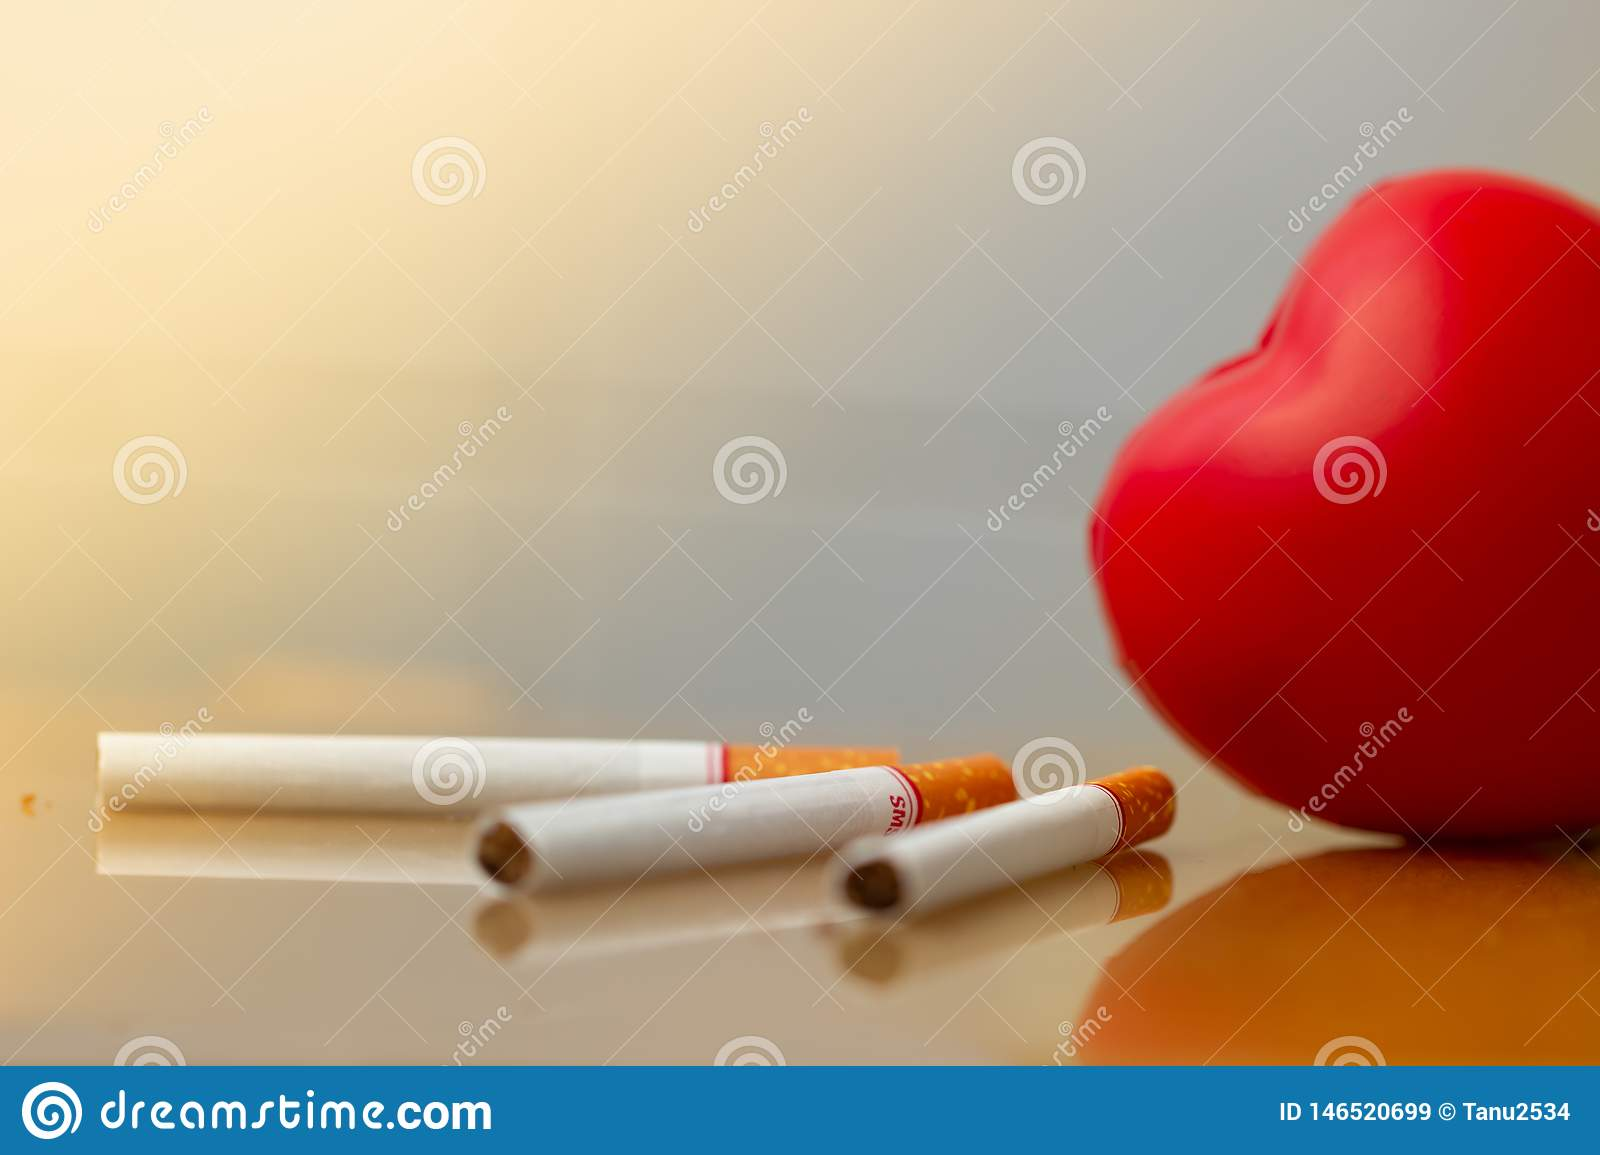 Red heart and cigarettes. Smoking cigarette destroying health. heart disease.